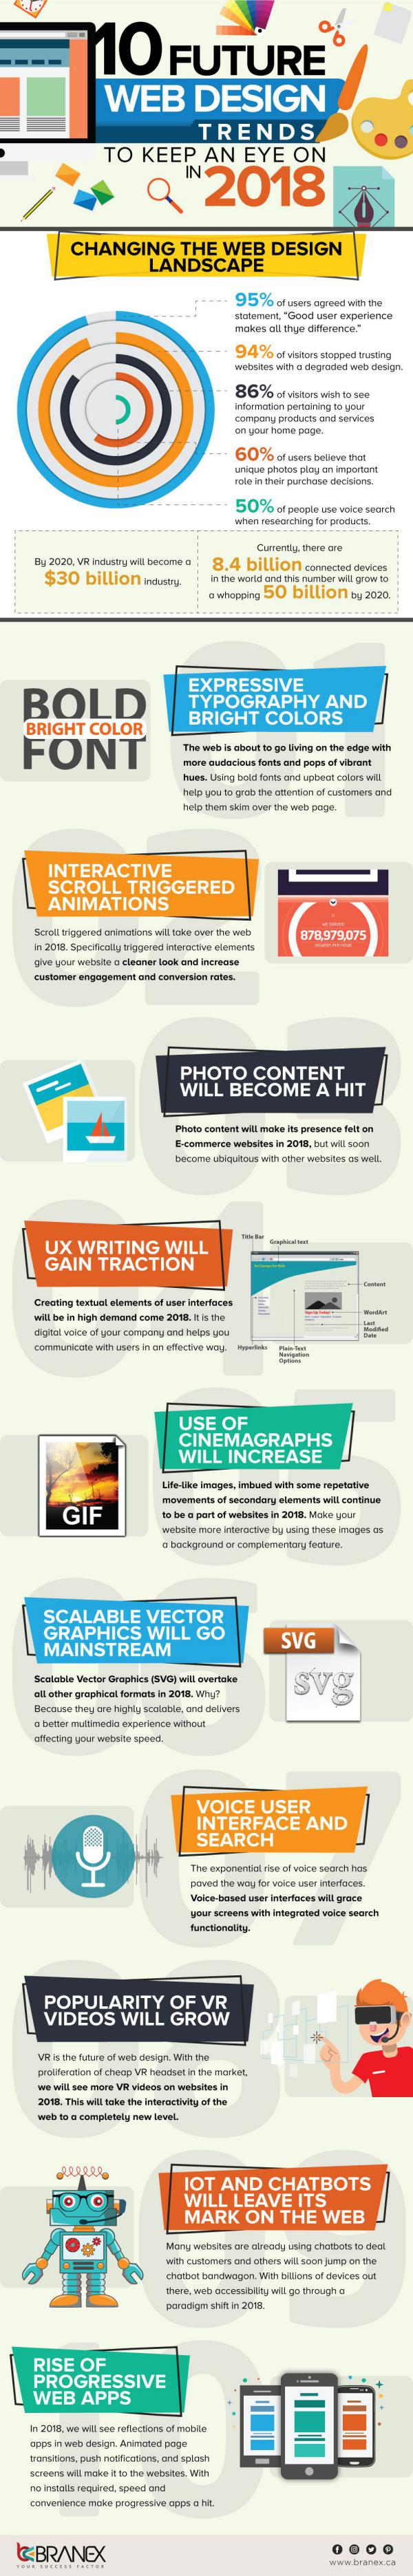 10 Hottest Web Design Trends to Look Out For 2018 [Infographic] 10 Hottest Web Design Trends to Look Out For 2018